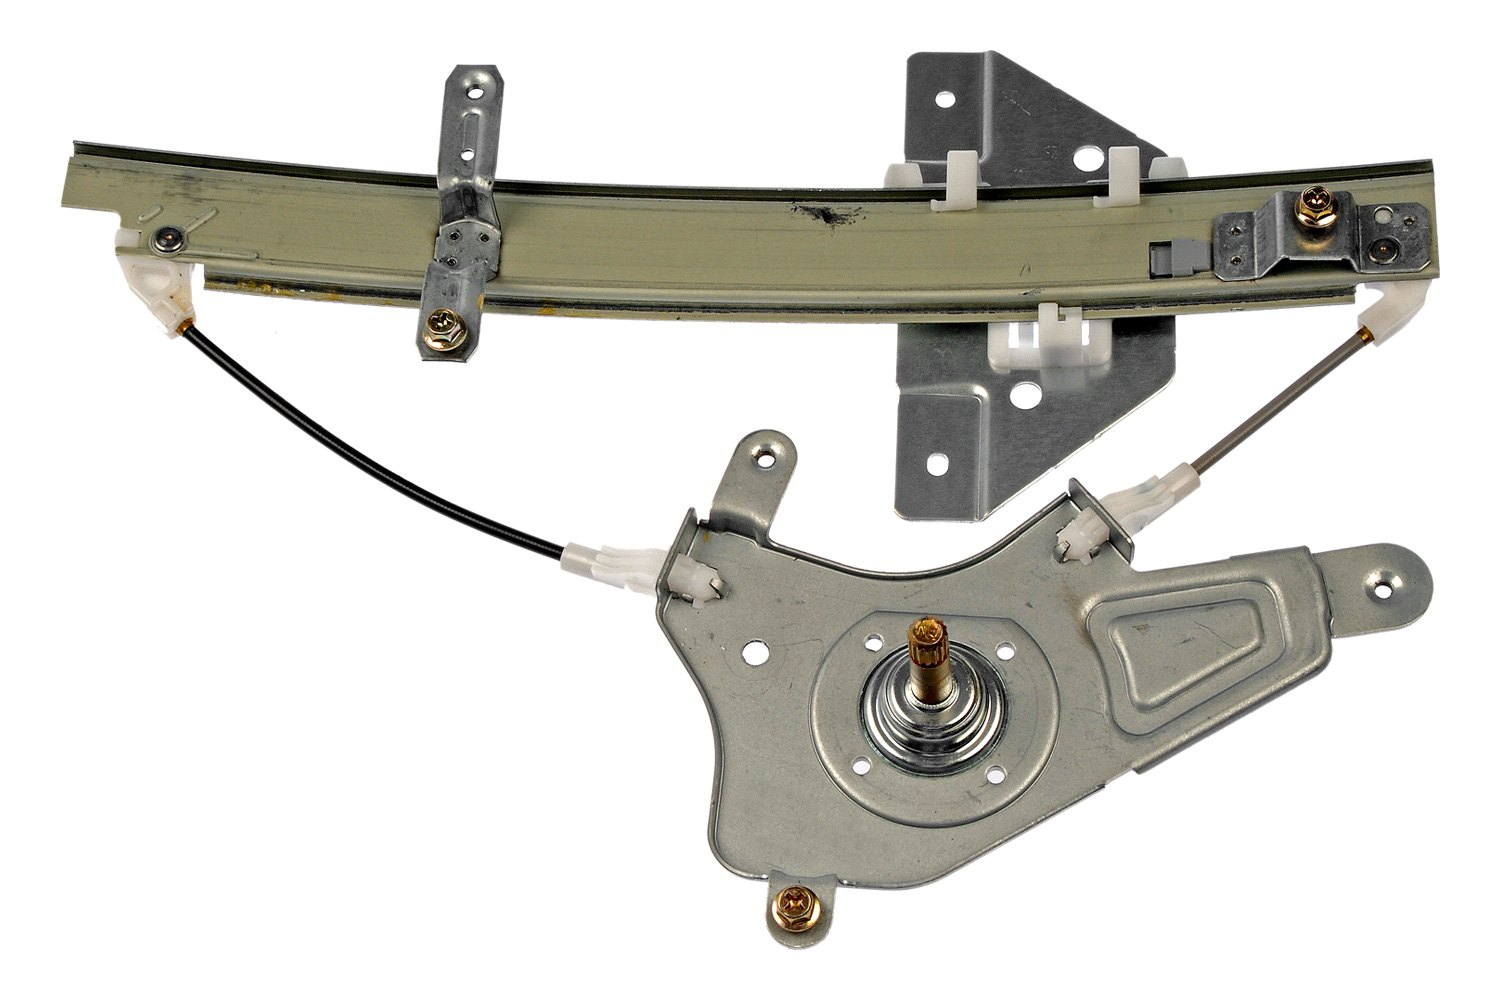 Dorman 740 201 pontiac grand am 1999 2004 manual window regulator for 1999 pontiac grand am window regulator